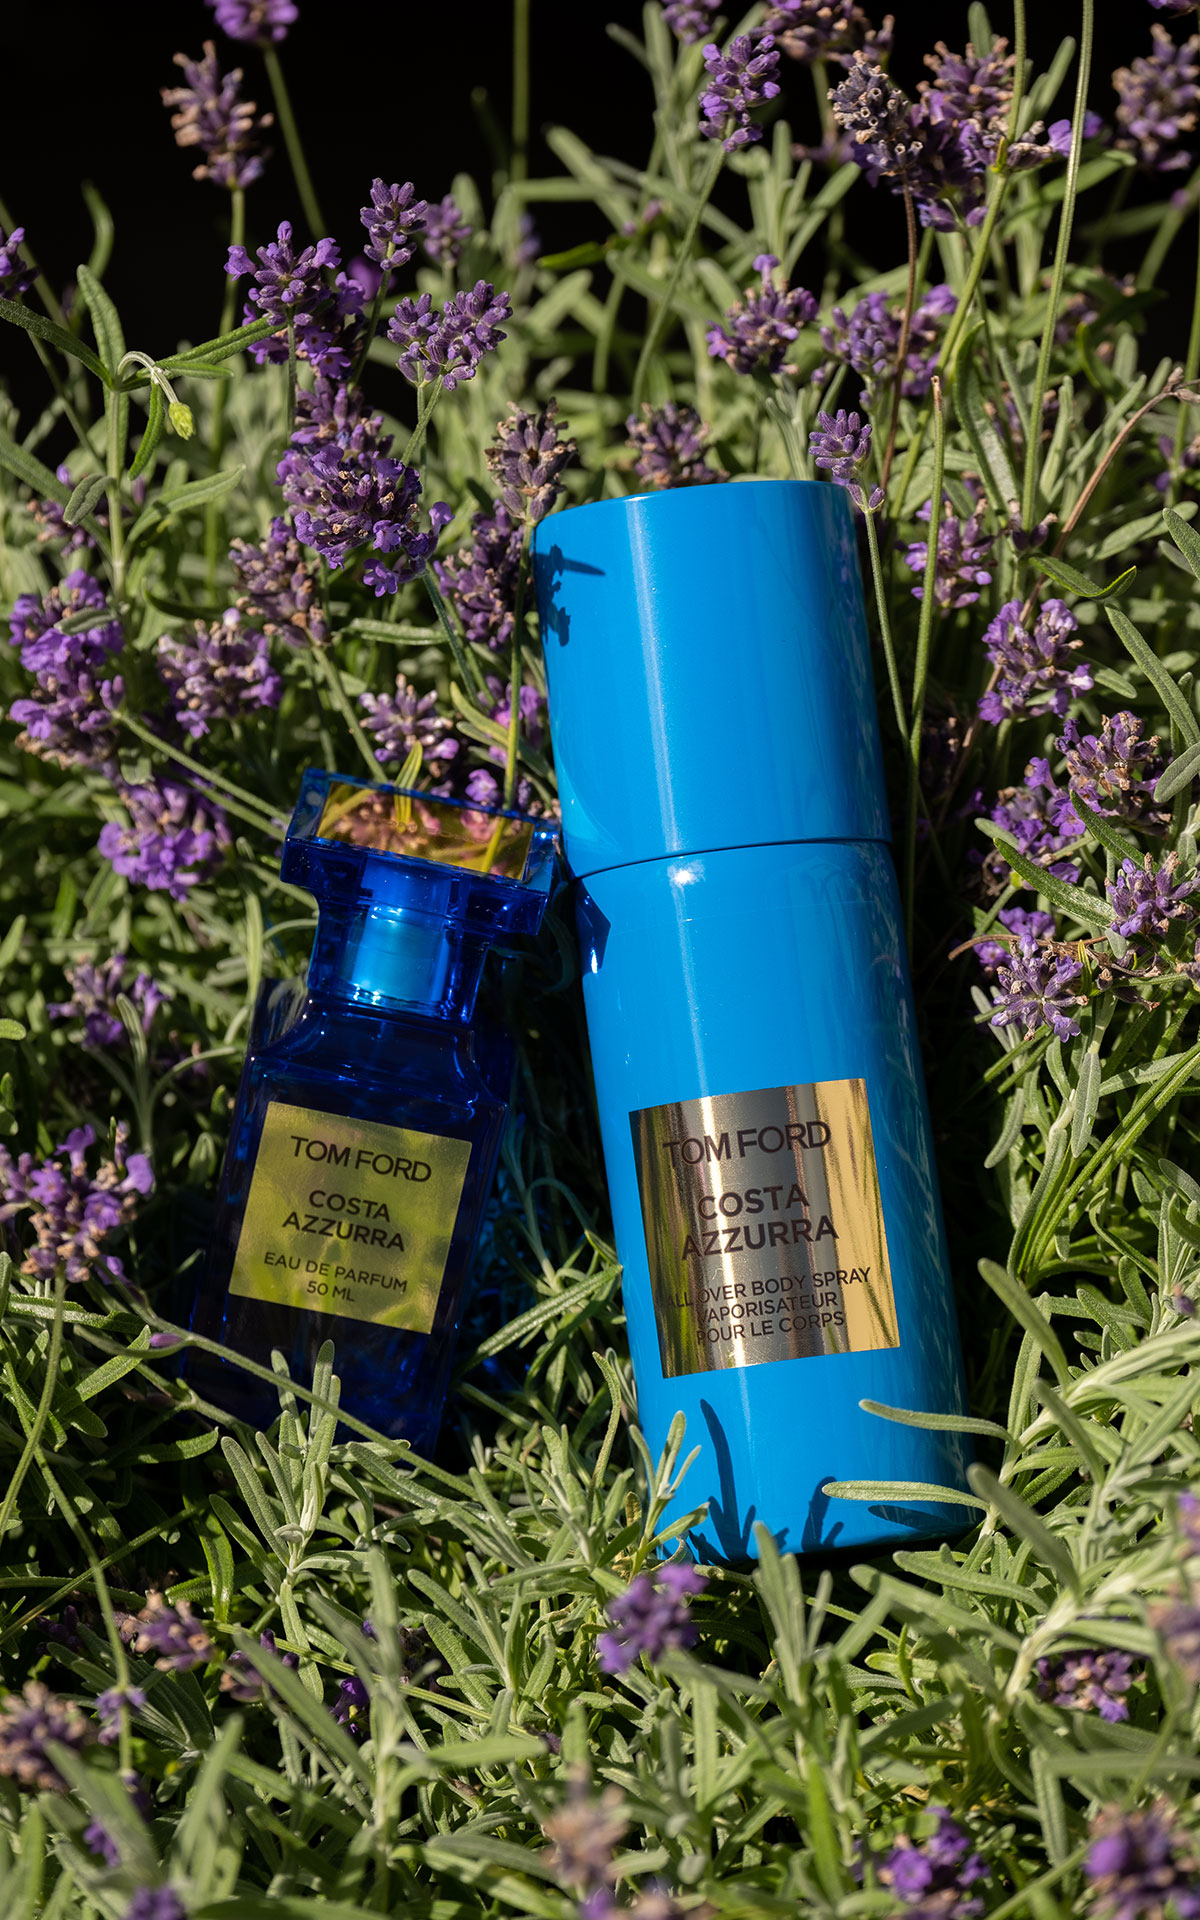 The Cosmetics Company Store Tom Ford costa azzurra perfume and body spray from Bicester Village